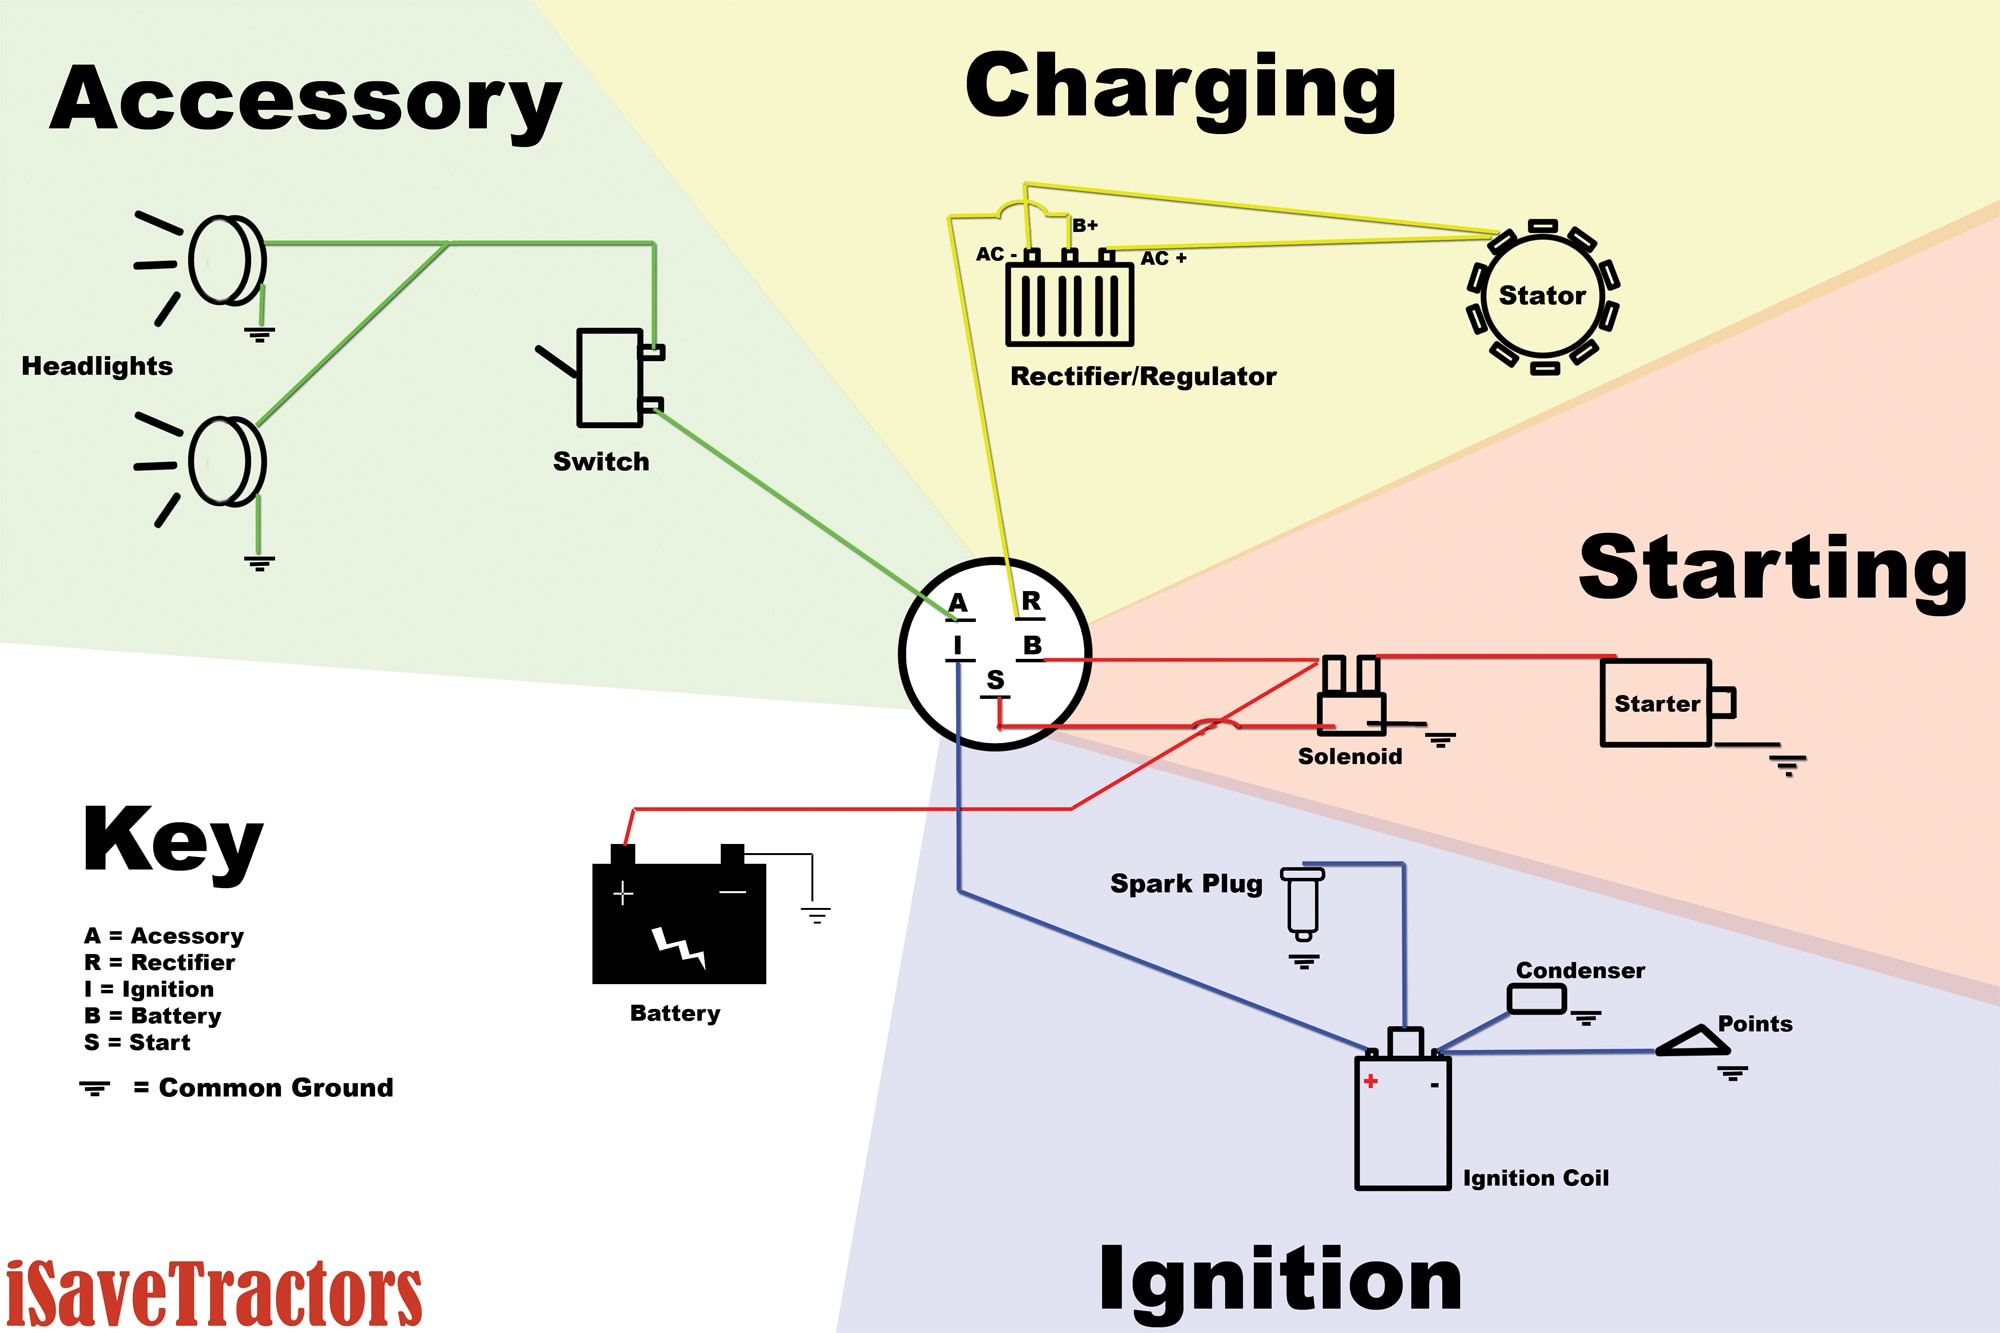 Basic Wiring Diagram For All Garden Tractors Using A Stator And - Briggs And Stratton Charging System Wiring Diagram